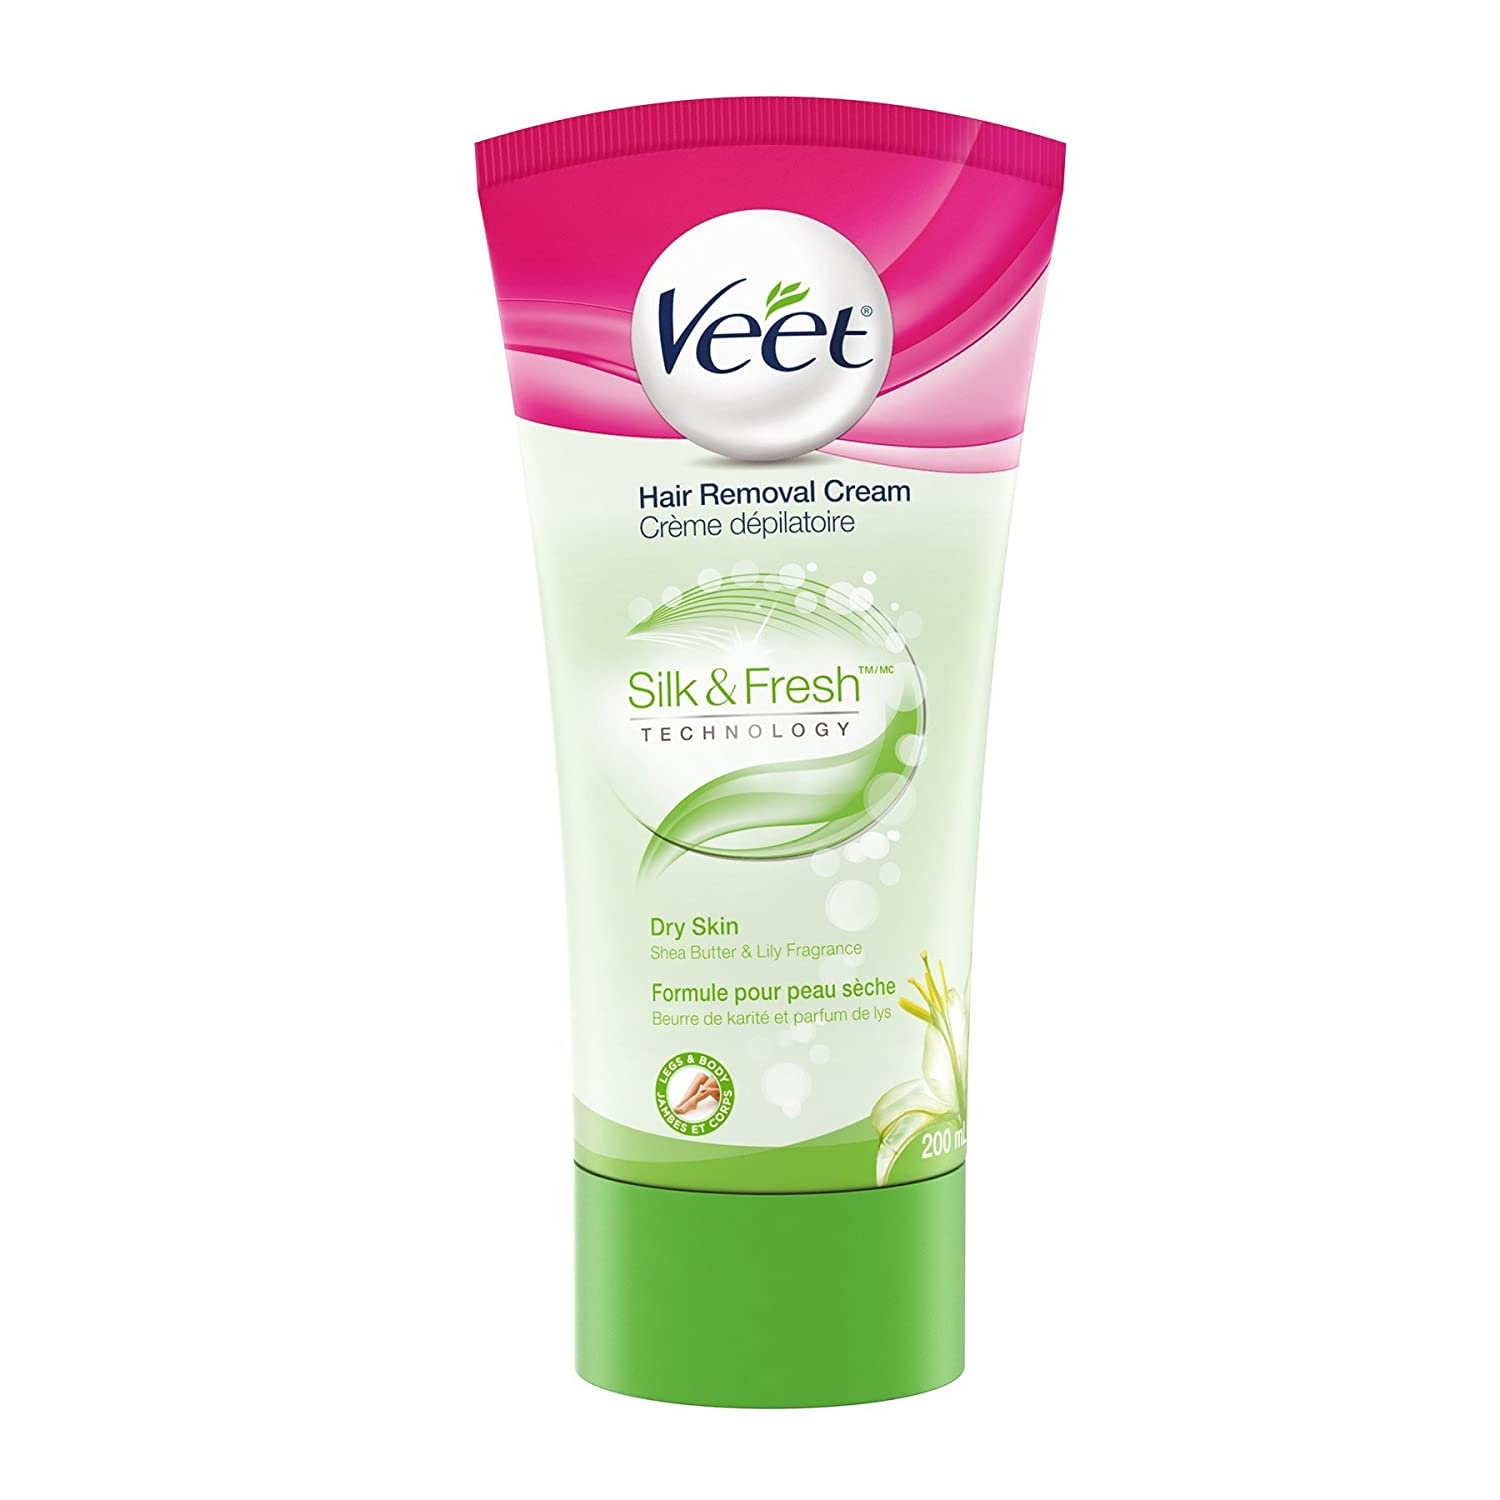 Veet Natural Inspirations, Hair Removal Gel/Cream, Legs & Body, Normal & Dry Skin, 200 ml